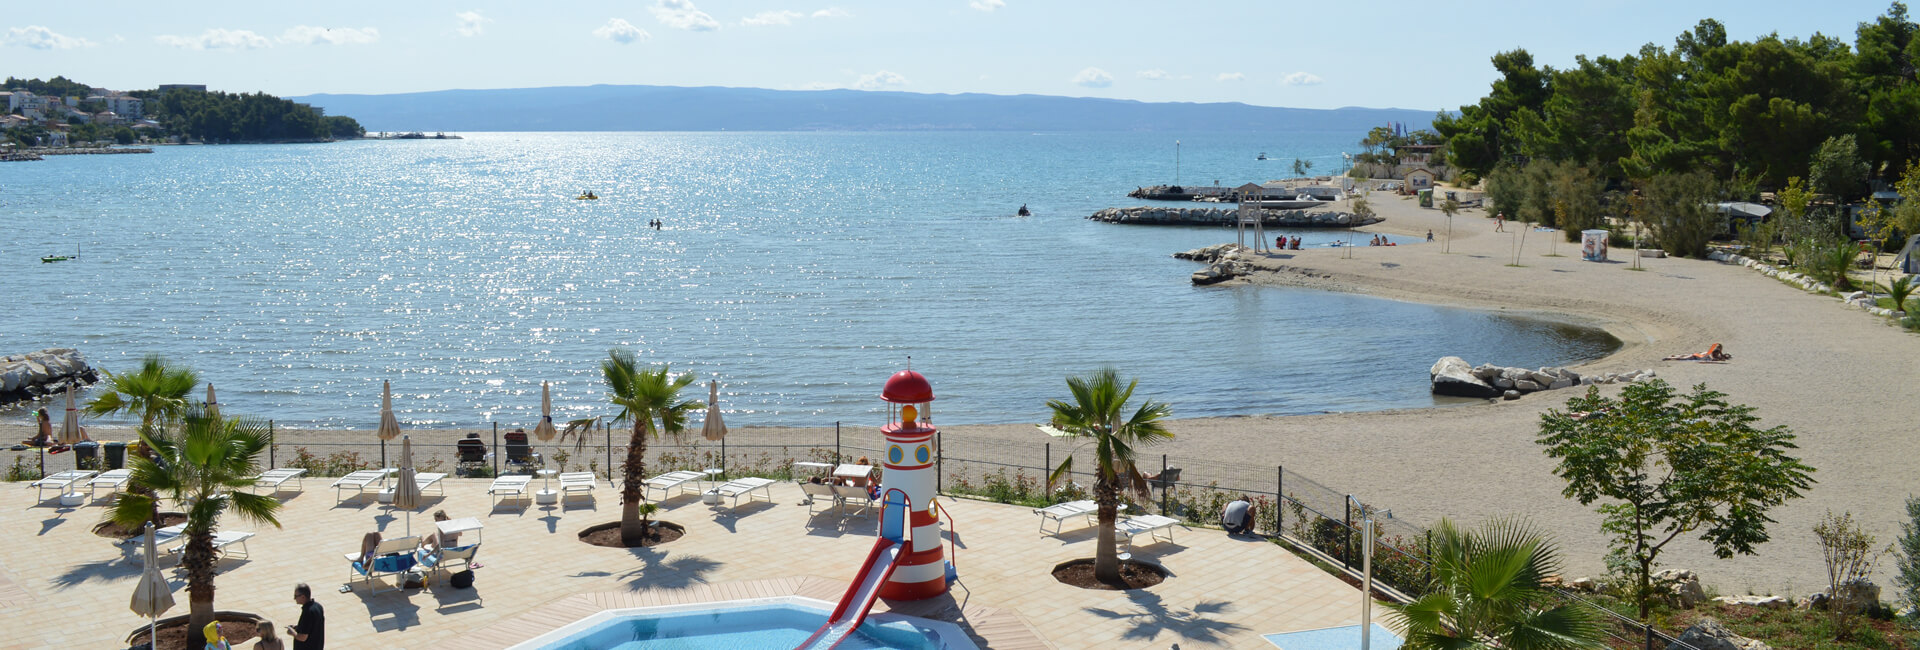 Camping Stobrec Split pool and beach